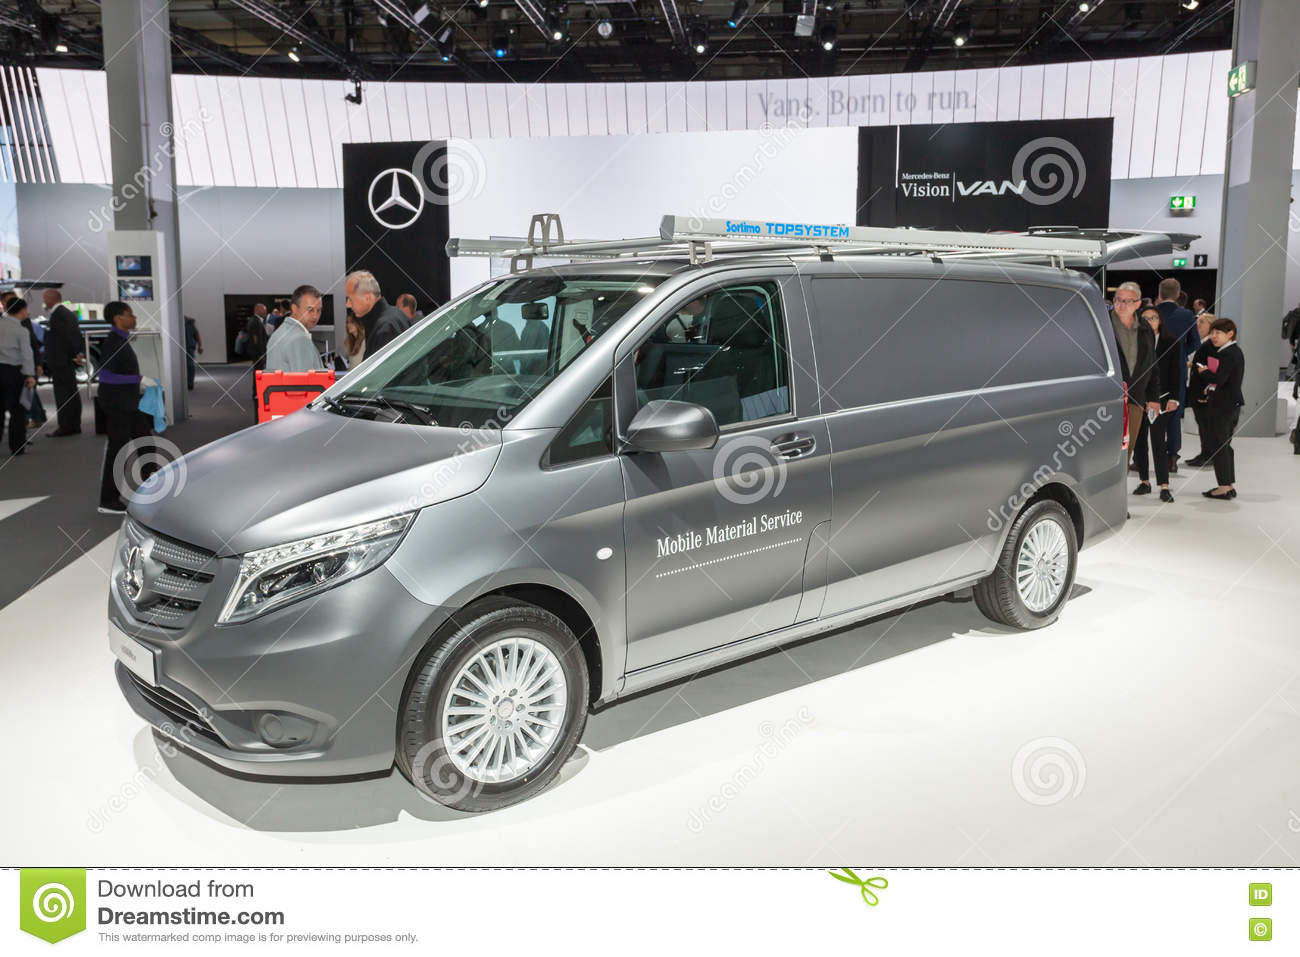 1ee4746699 Mercedes Benz Vito editorial stock photo. Image of fair - 77974493